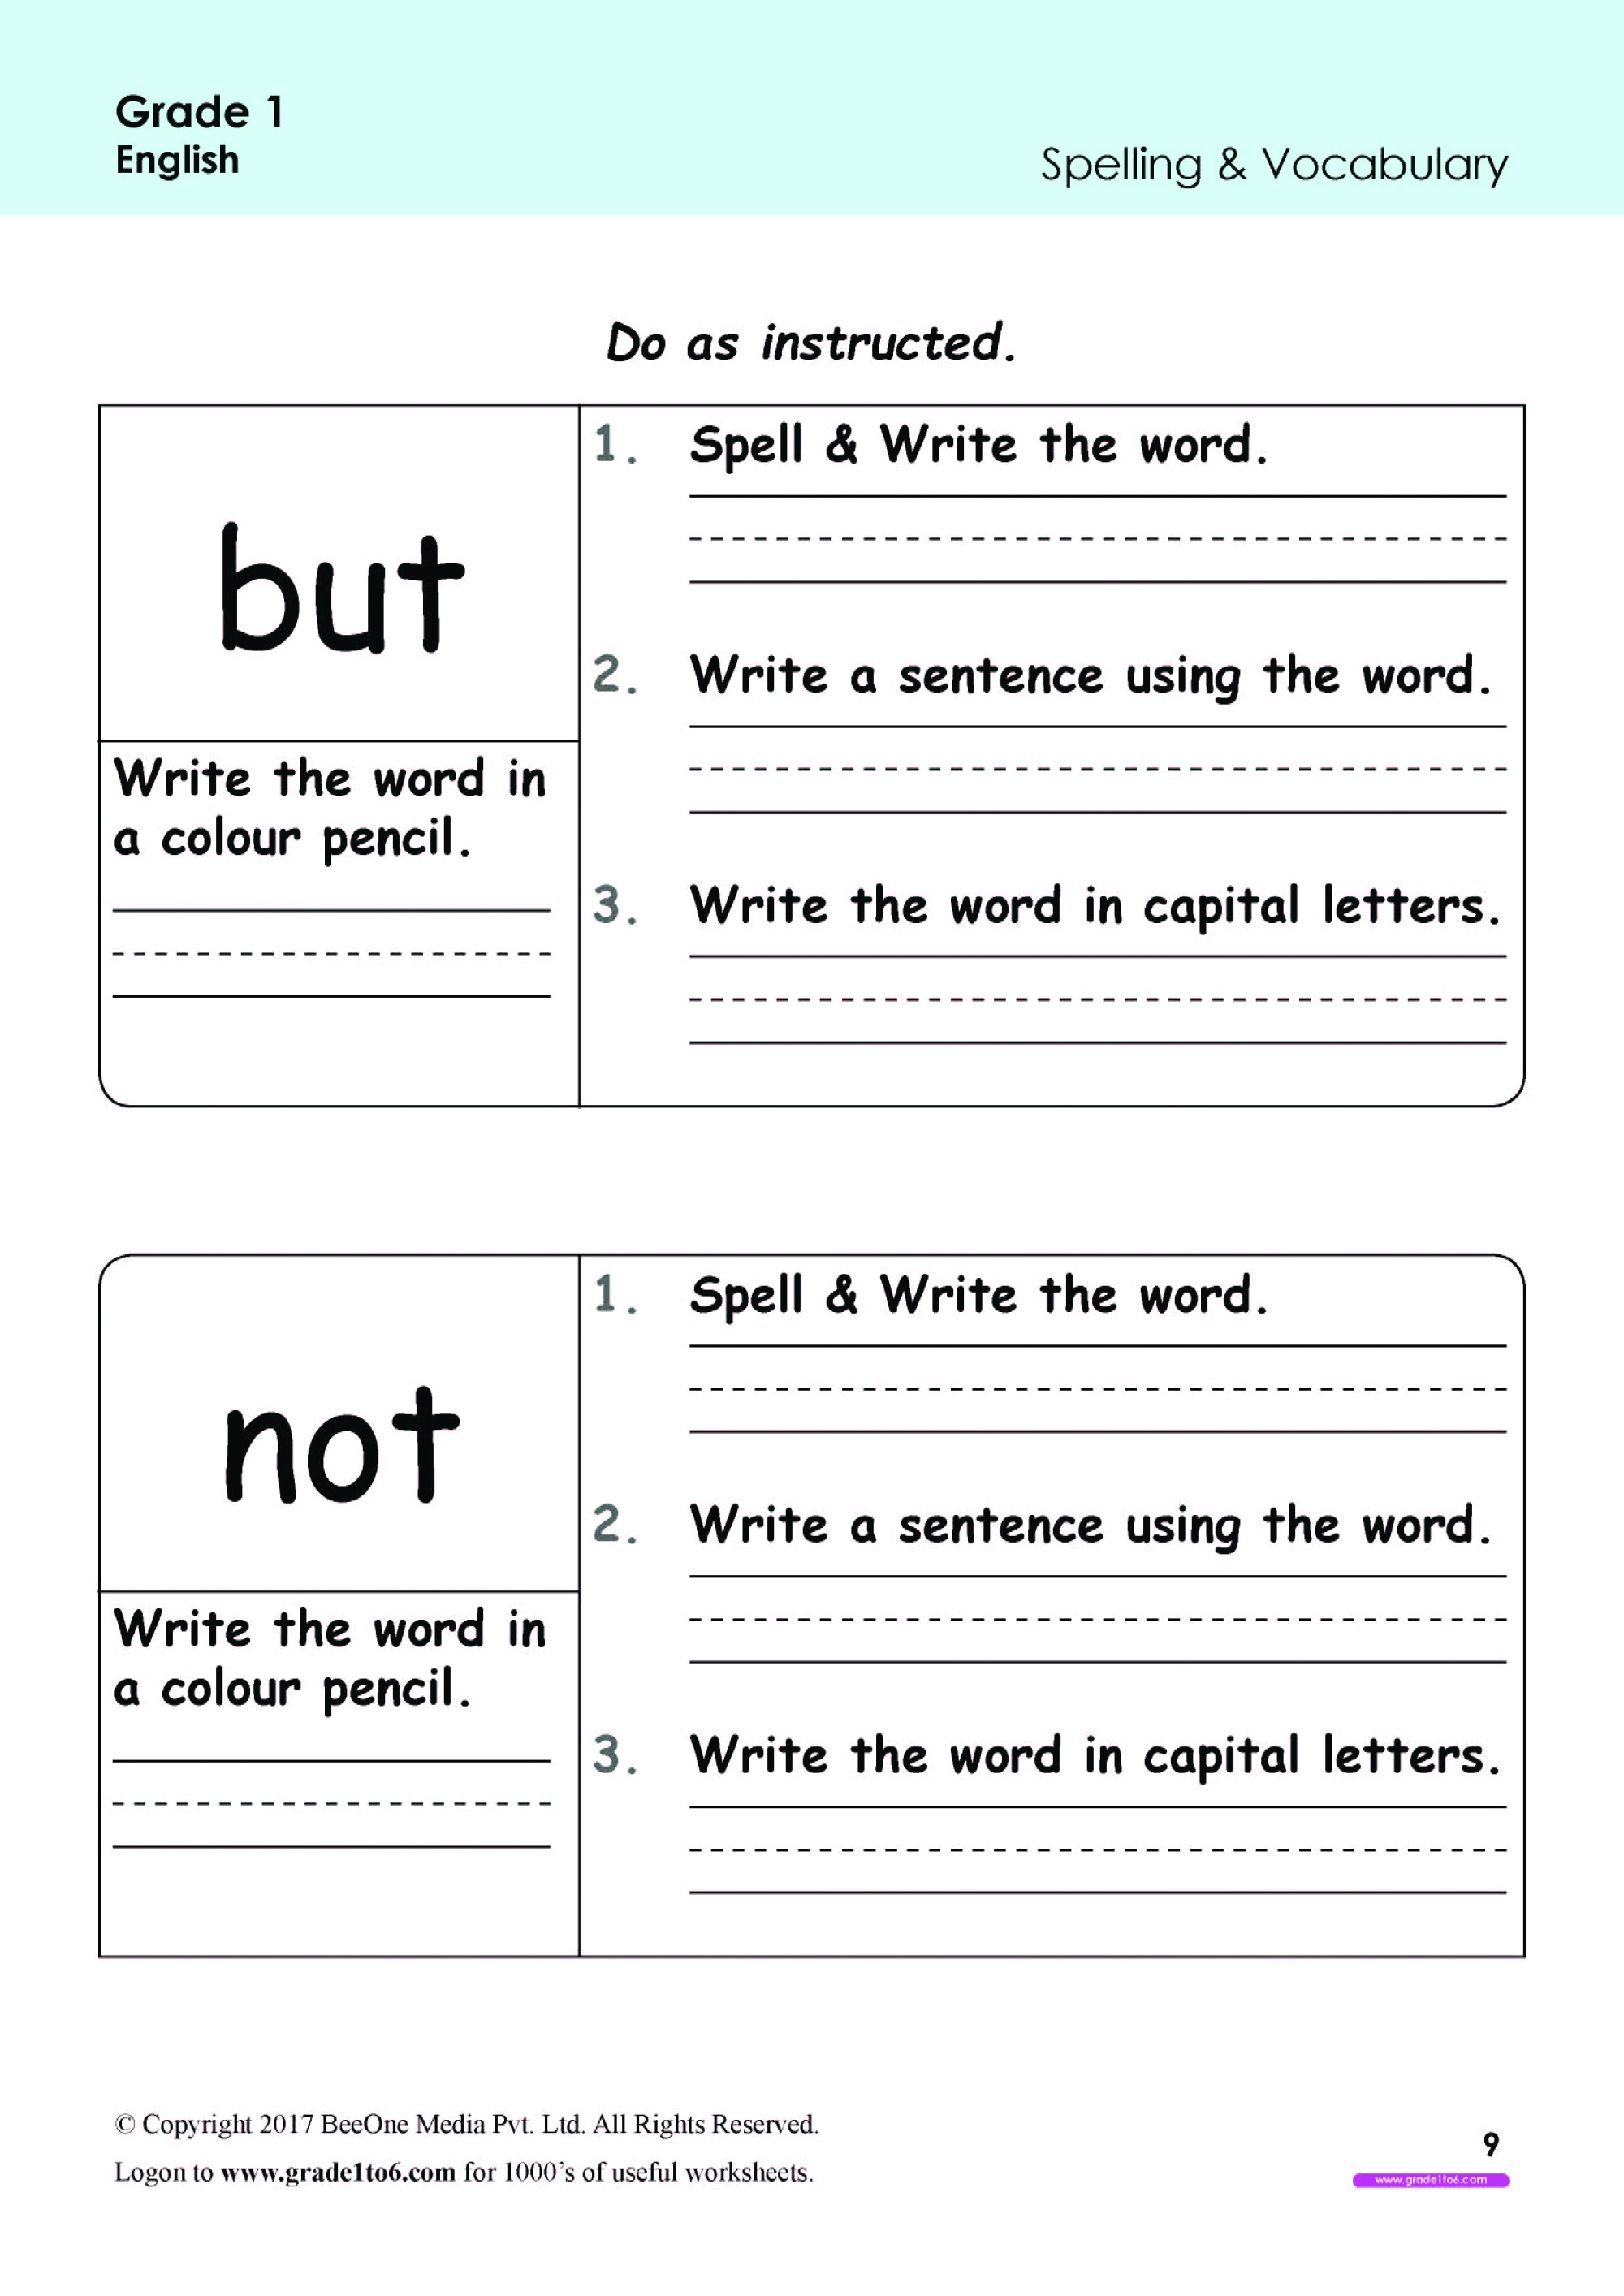 hight resolution of But Not\ Spellings Worksheets Grade 1 www.grade1to6.com